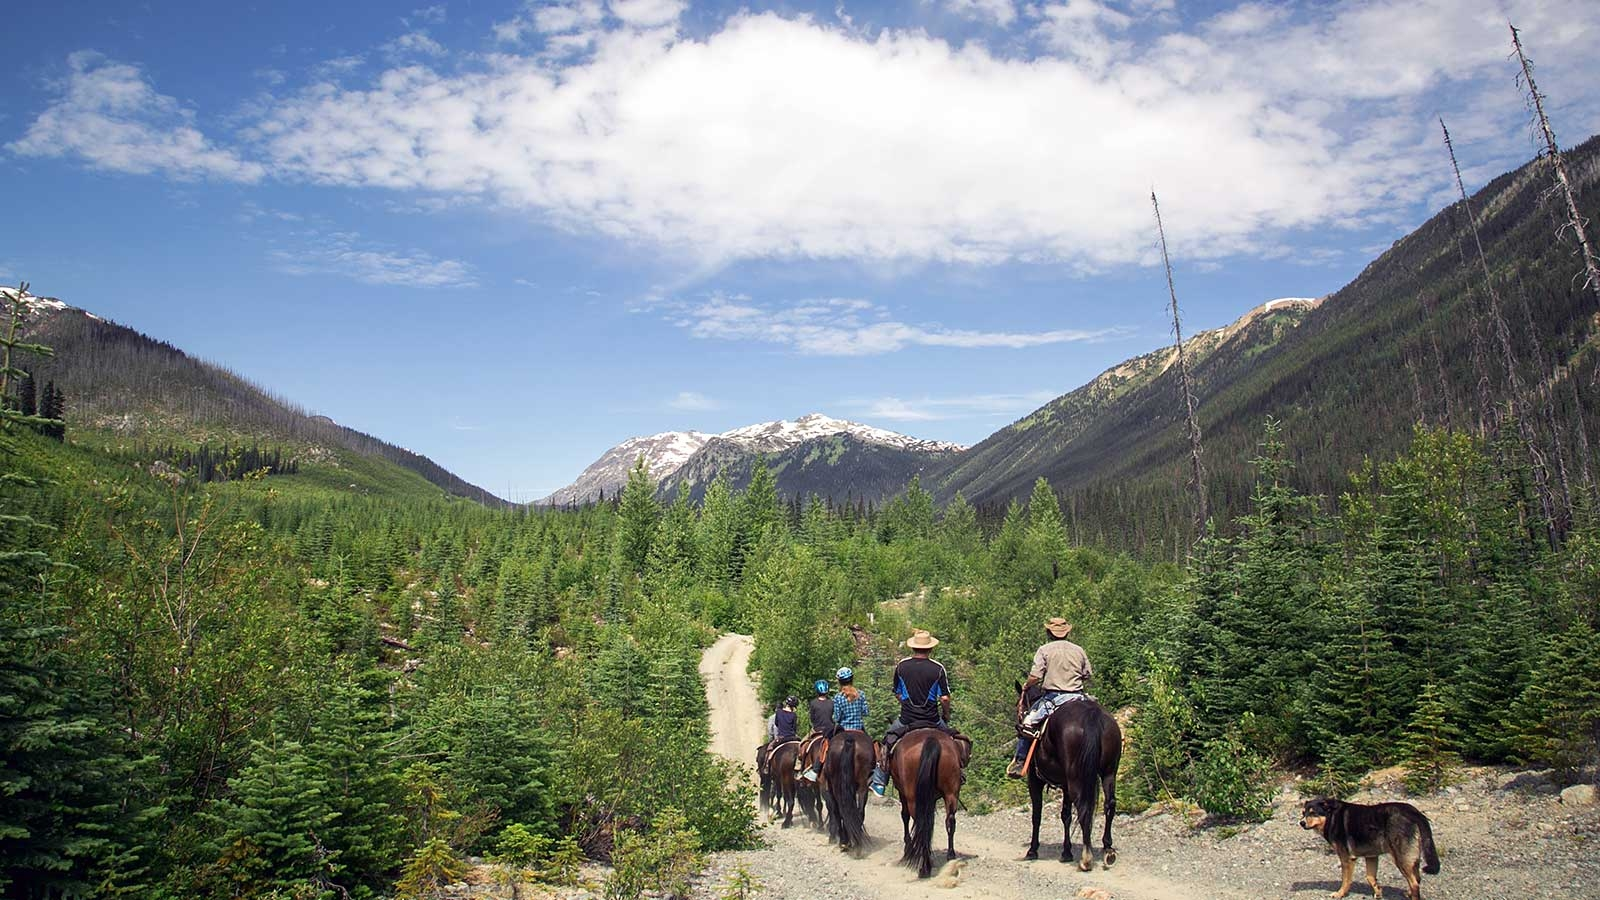 group of horse back riders riding through remote mountain area